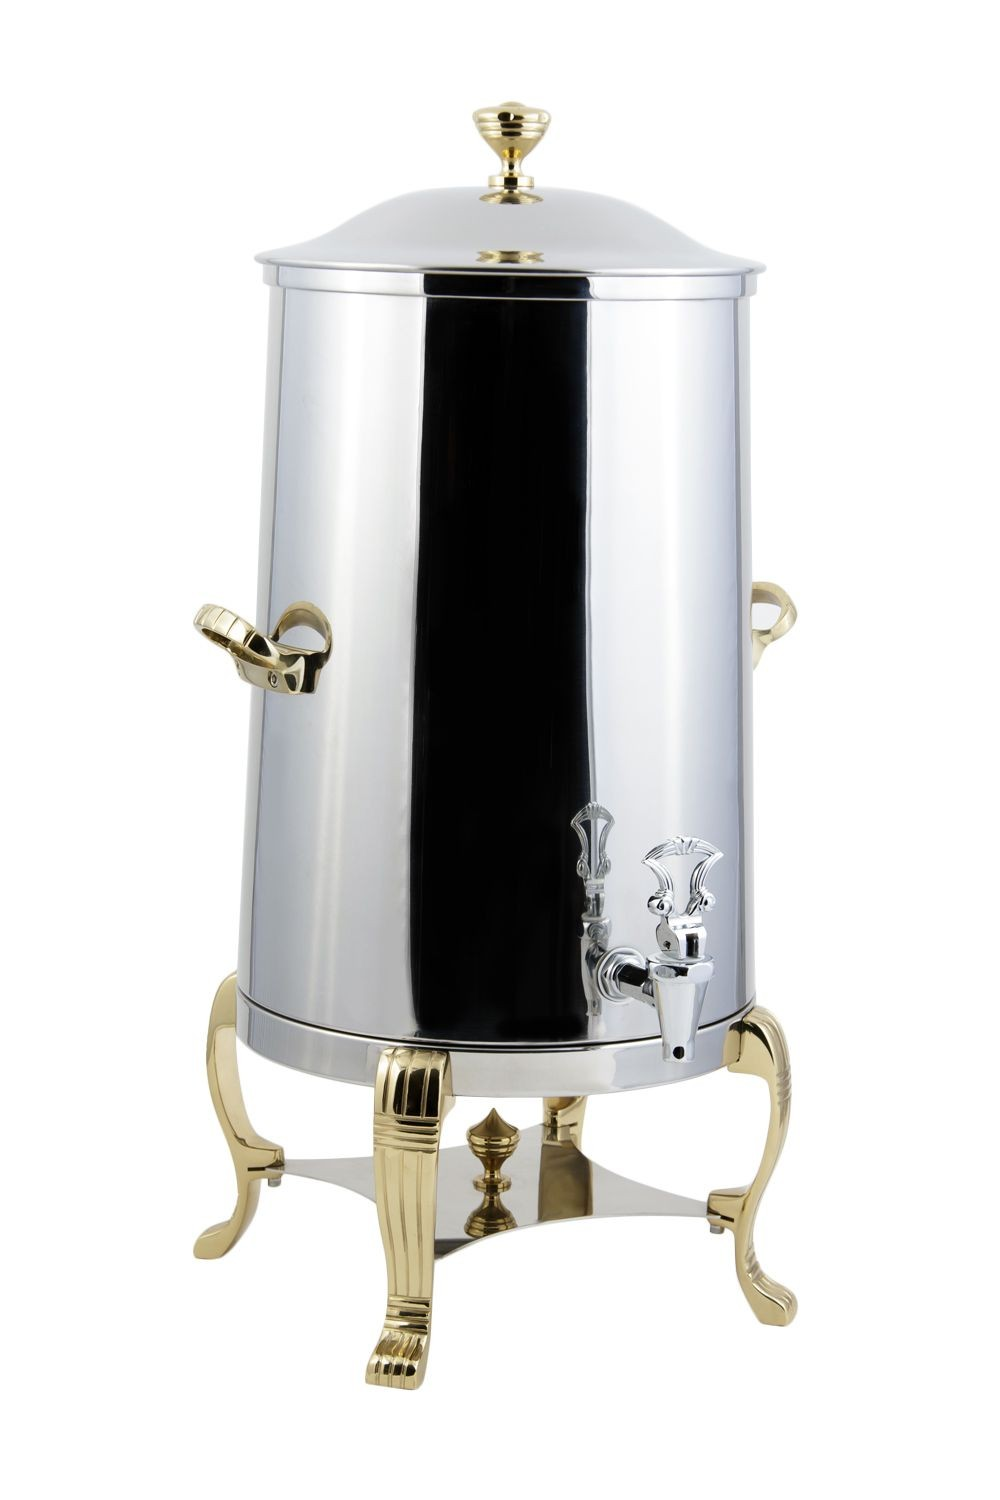 Bon Chef 40001 Aurora Insulated Coffee Urn with Brass Trim, 1 1/2 Gallon